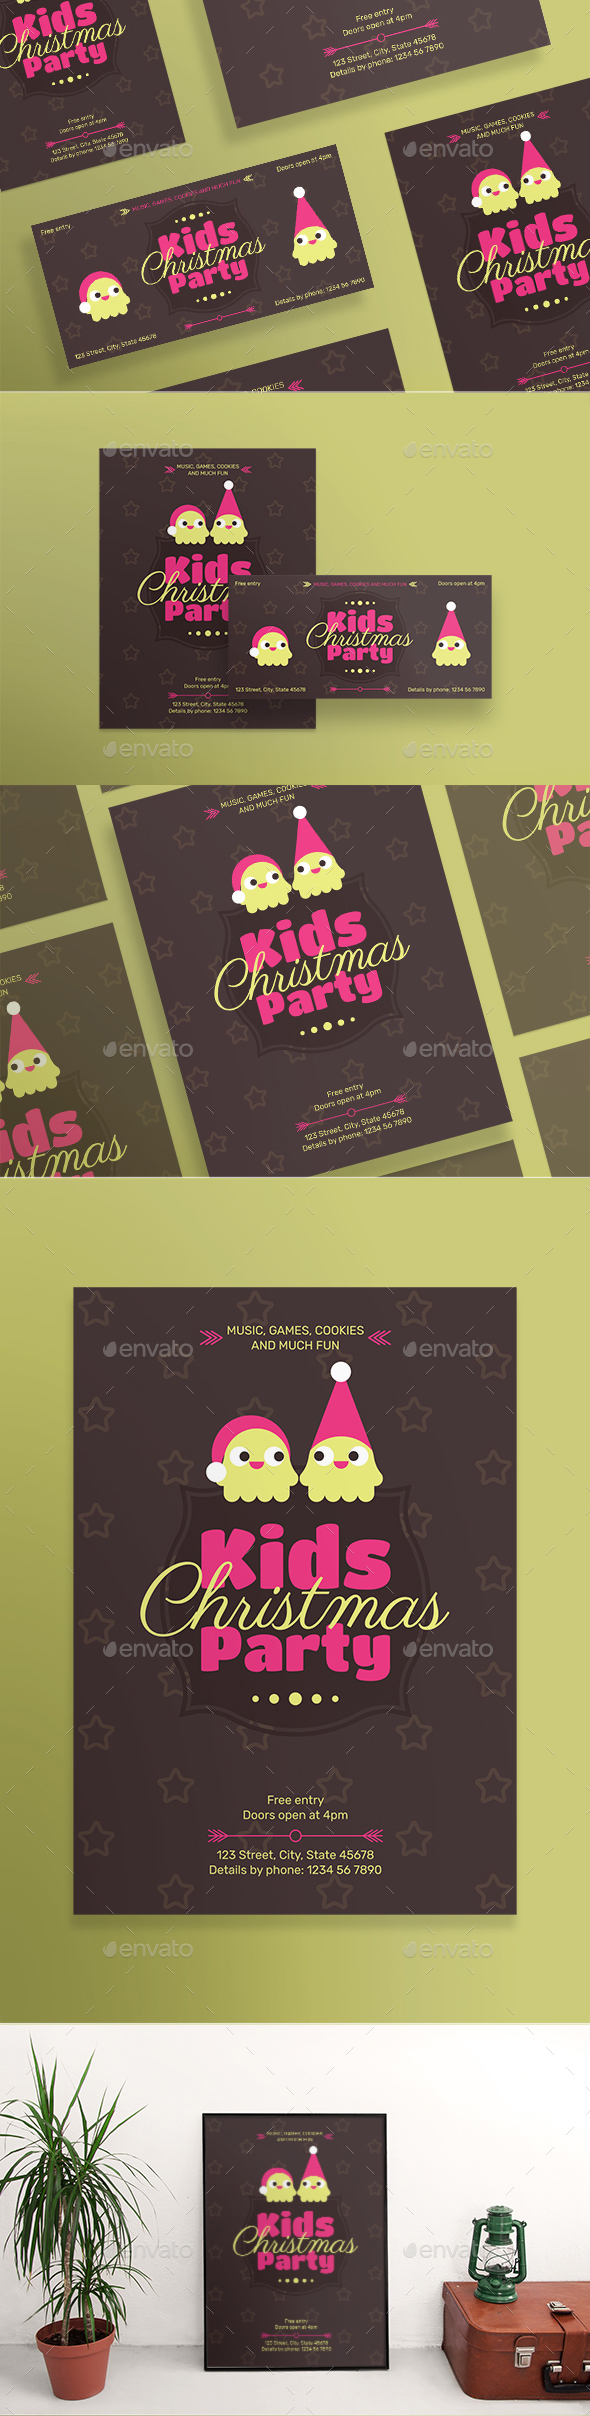 Kids Christmas Party Flyers - Clubs & Parties Events